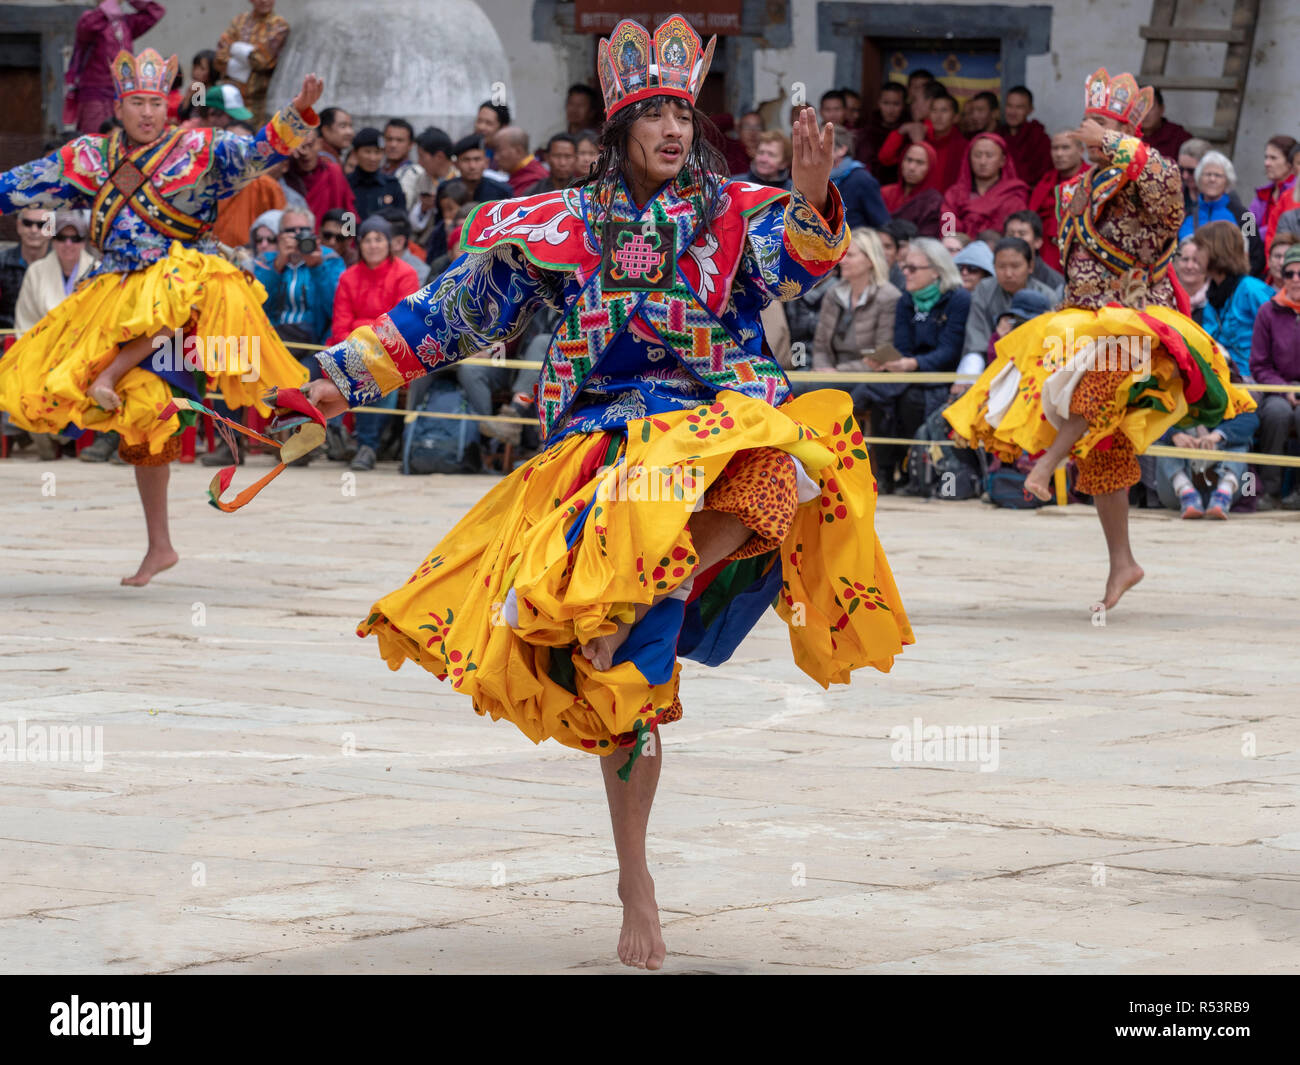 Dancers at the Black-Necked Crane Festival in Gangtey, Bhutan Stock Photo